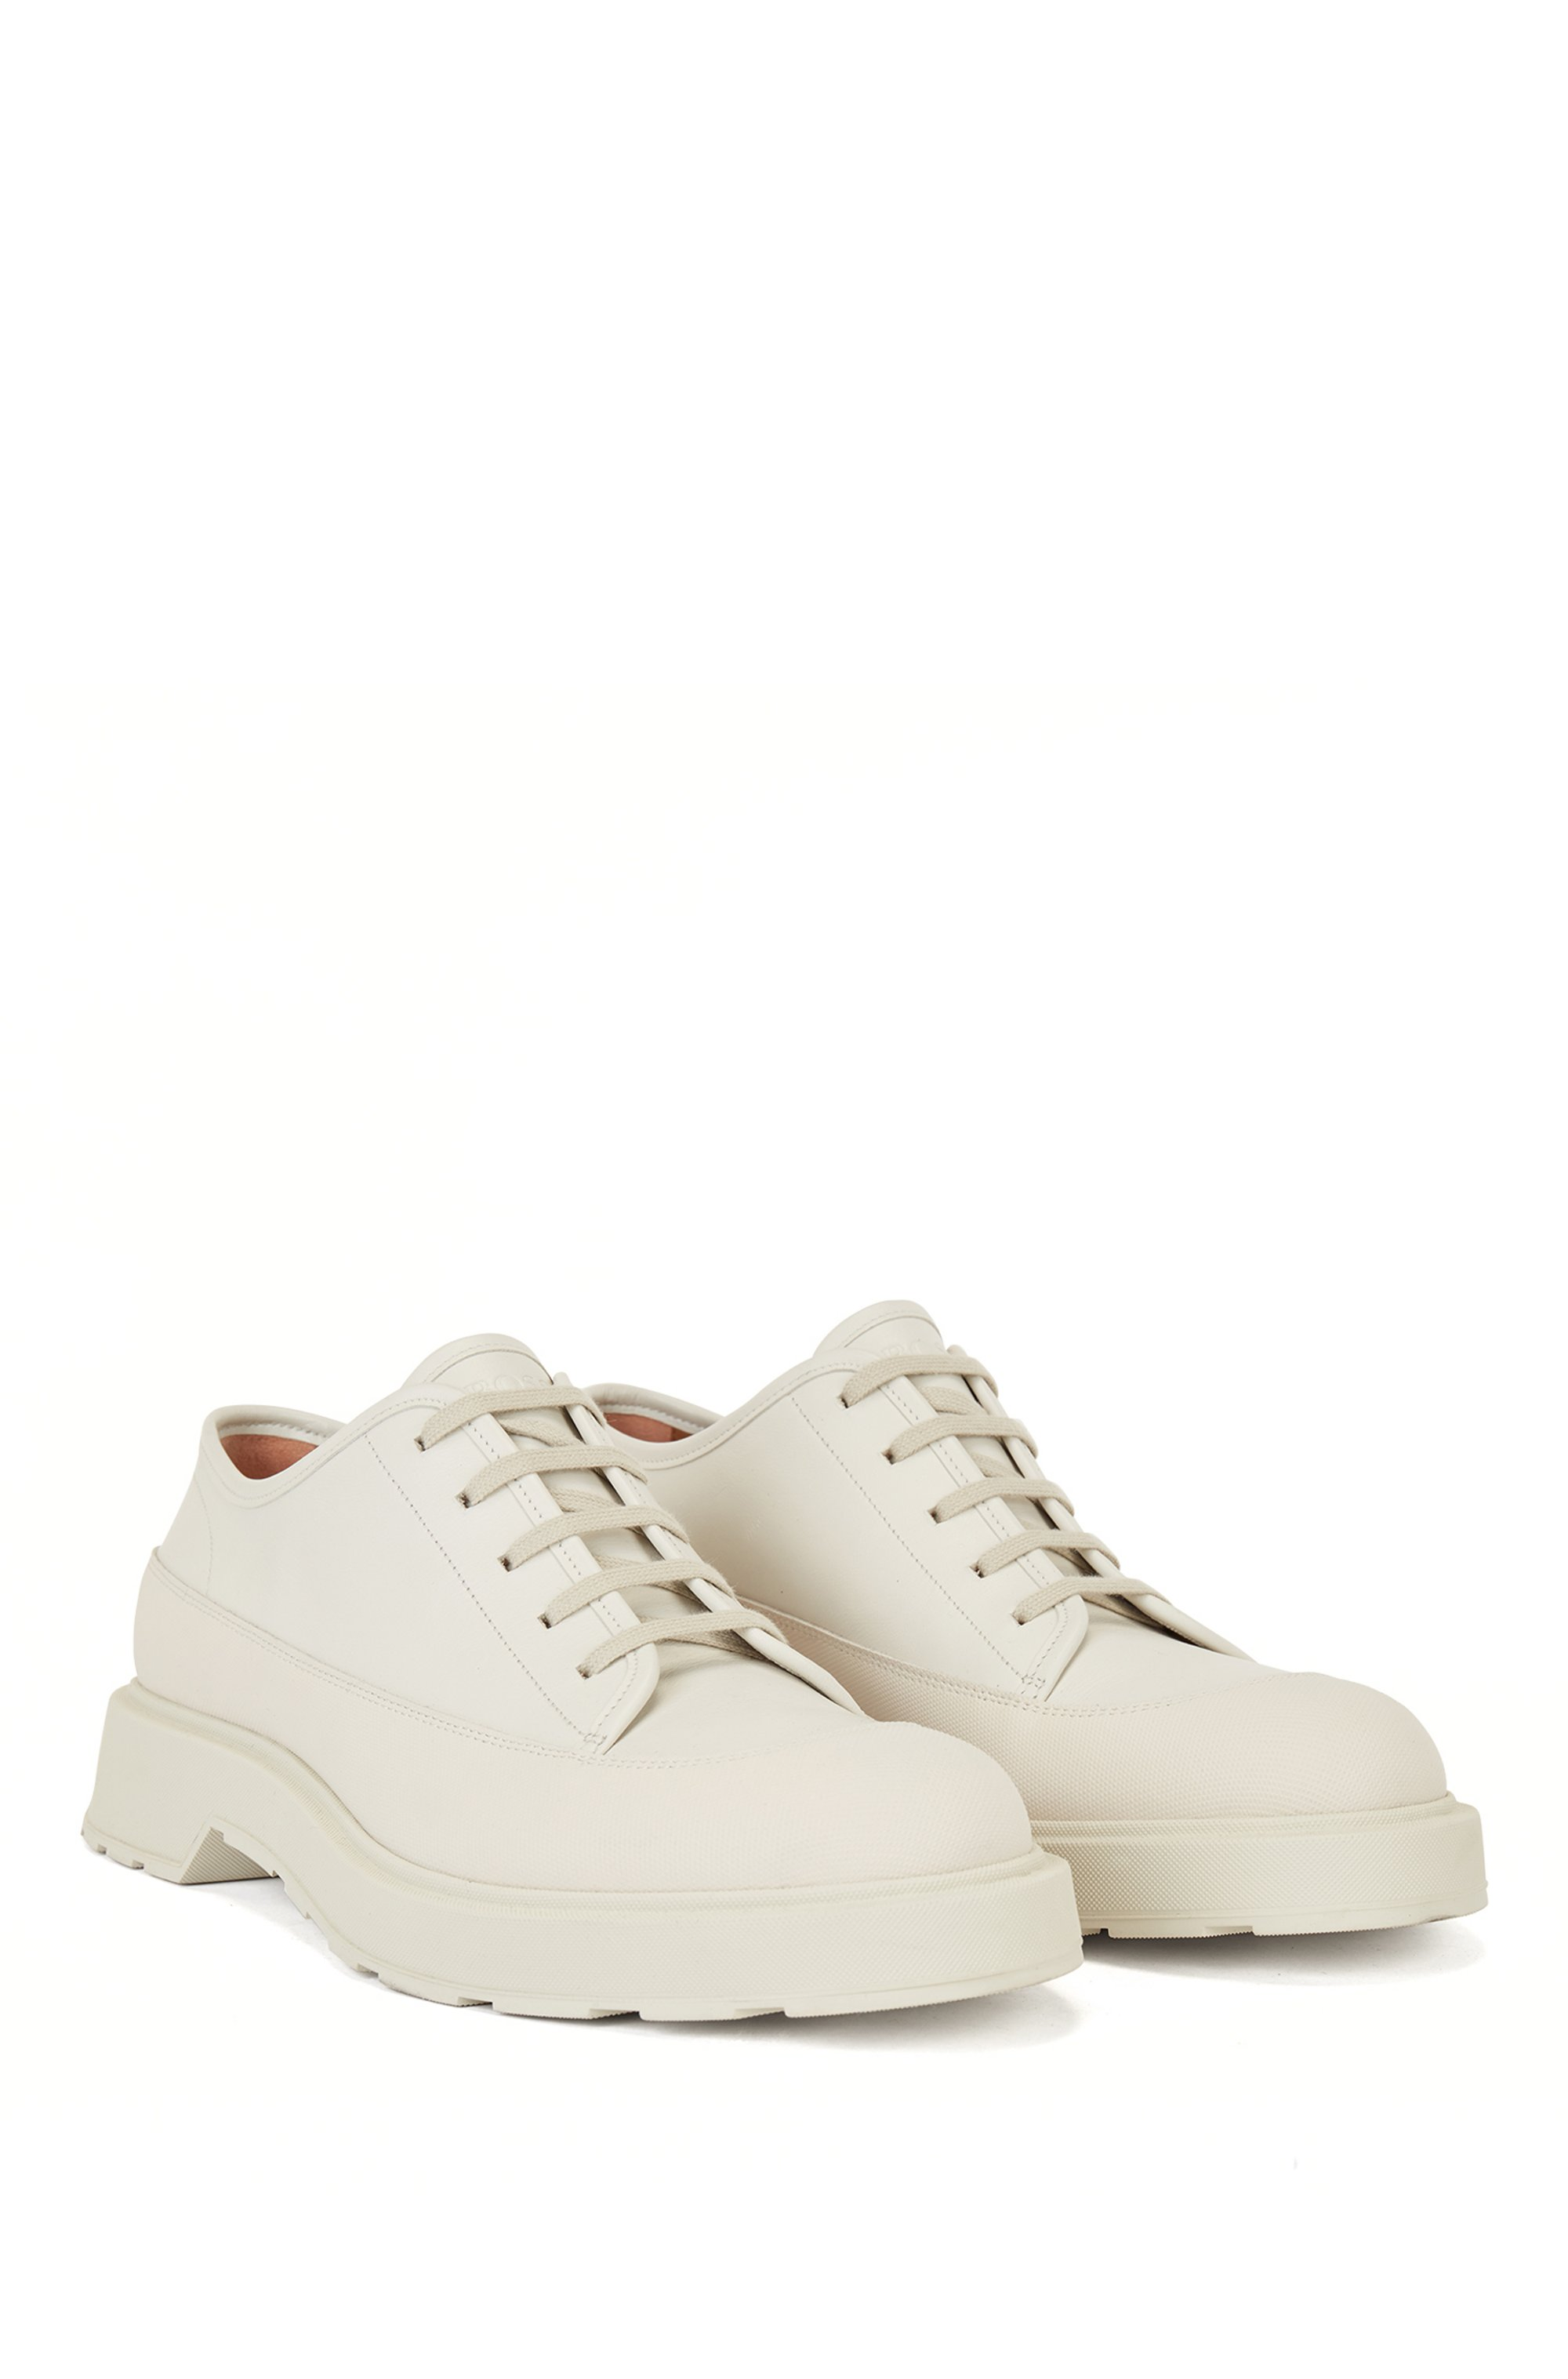 Hybrid Derby shoes in calf leather with lug sole